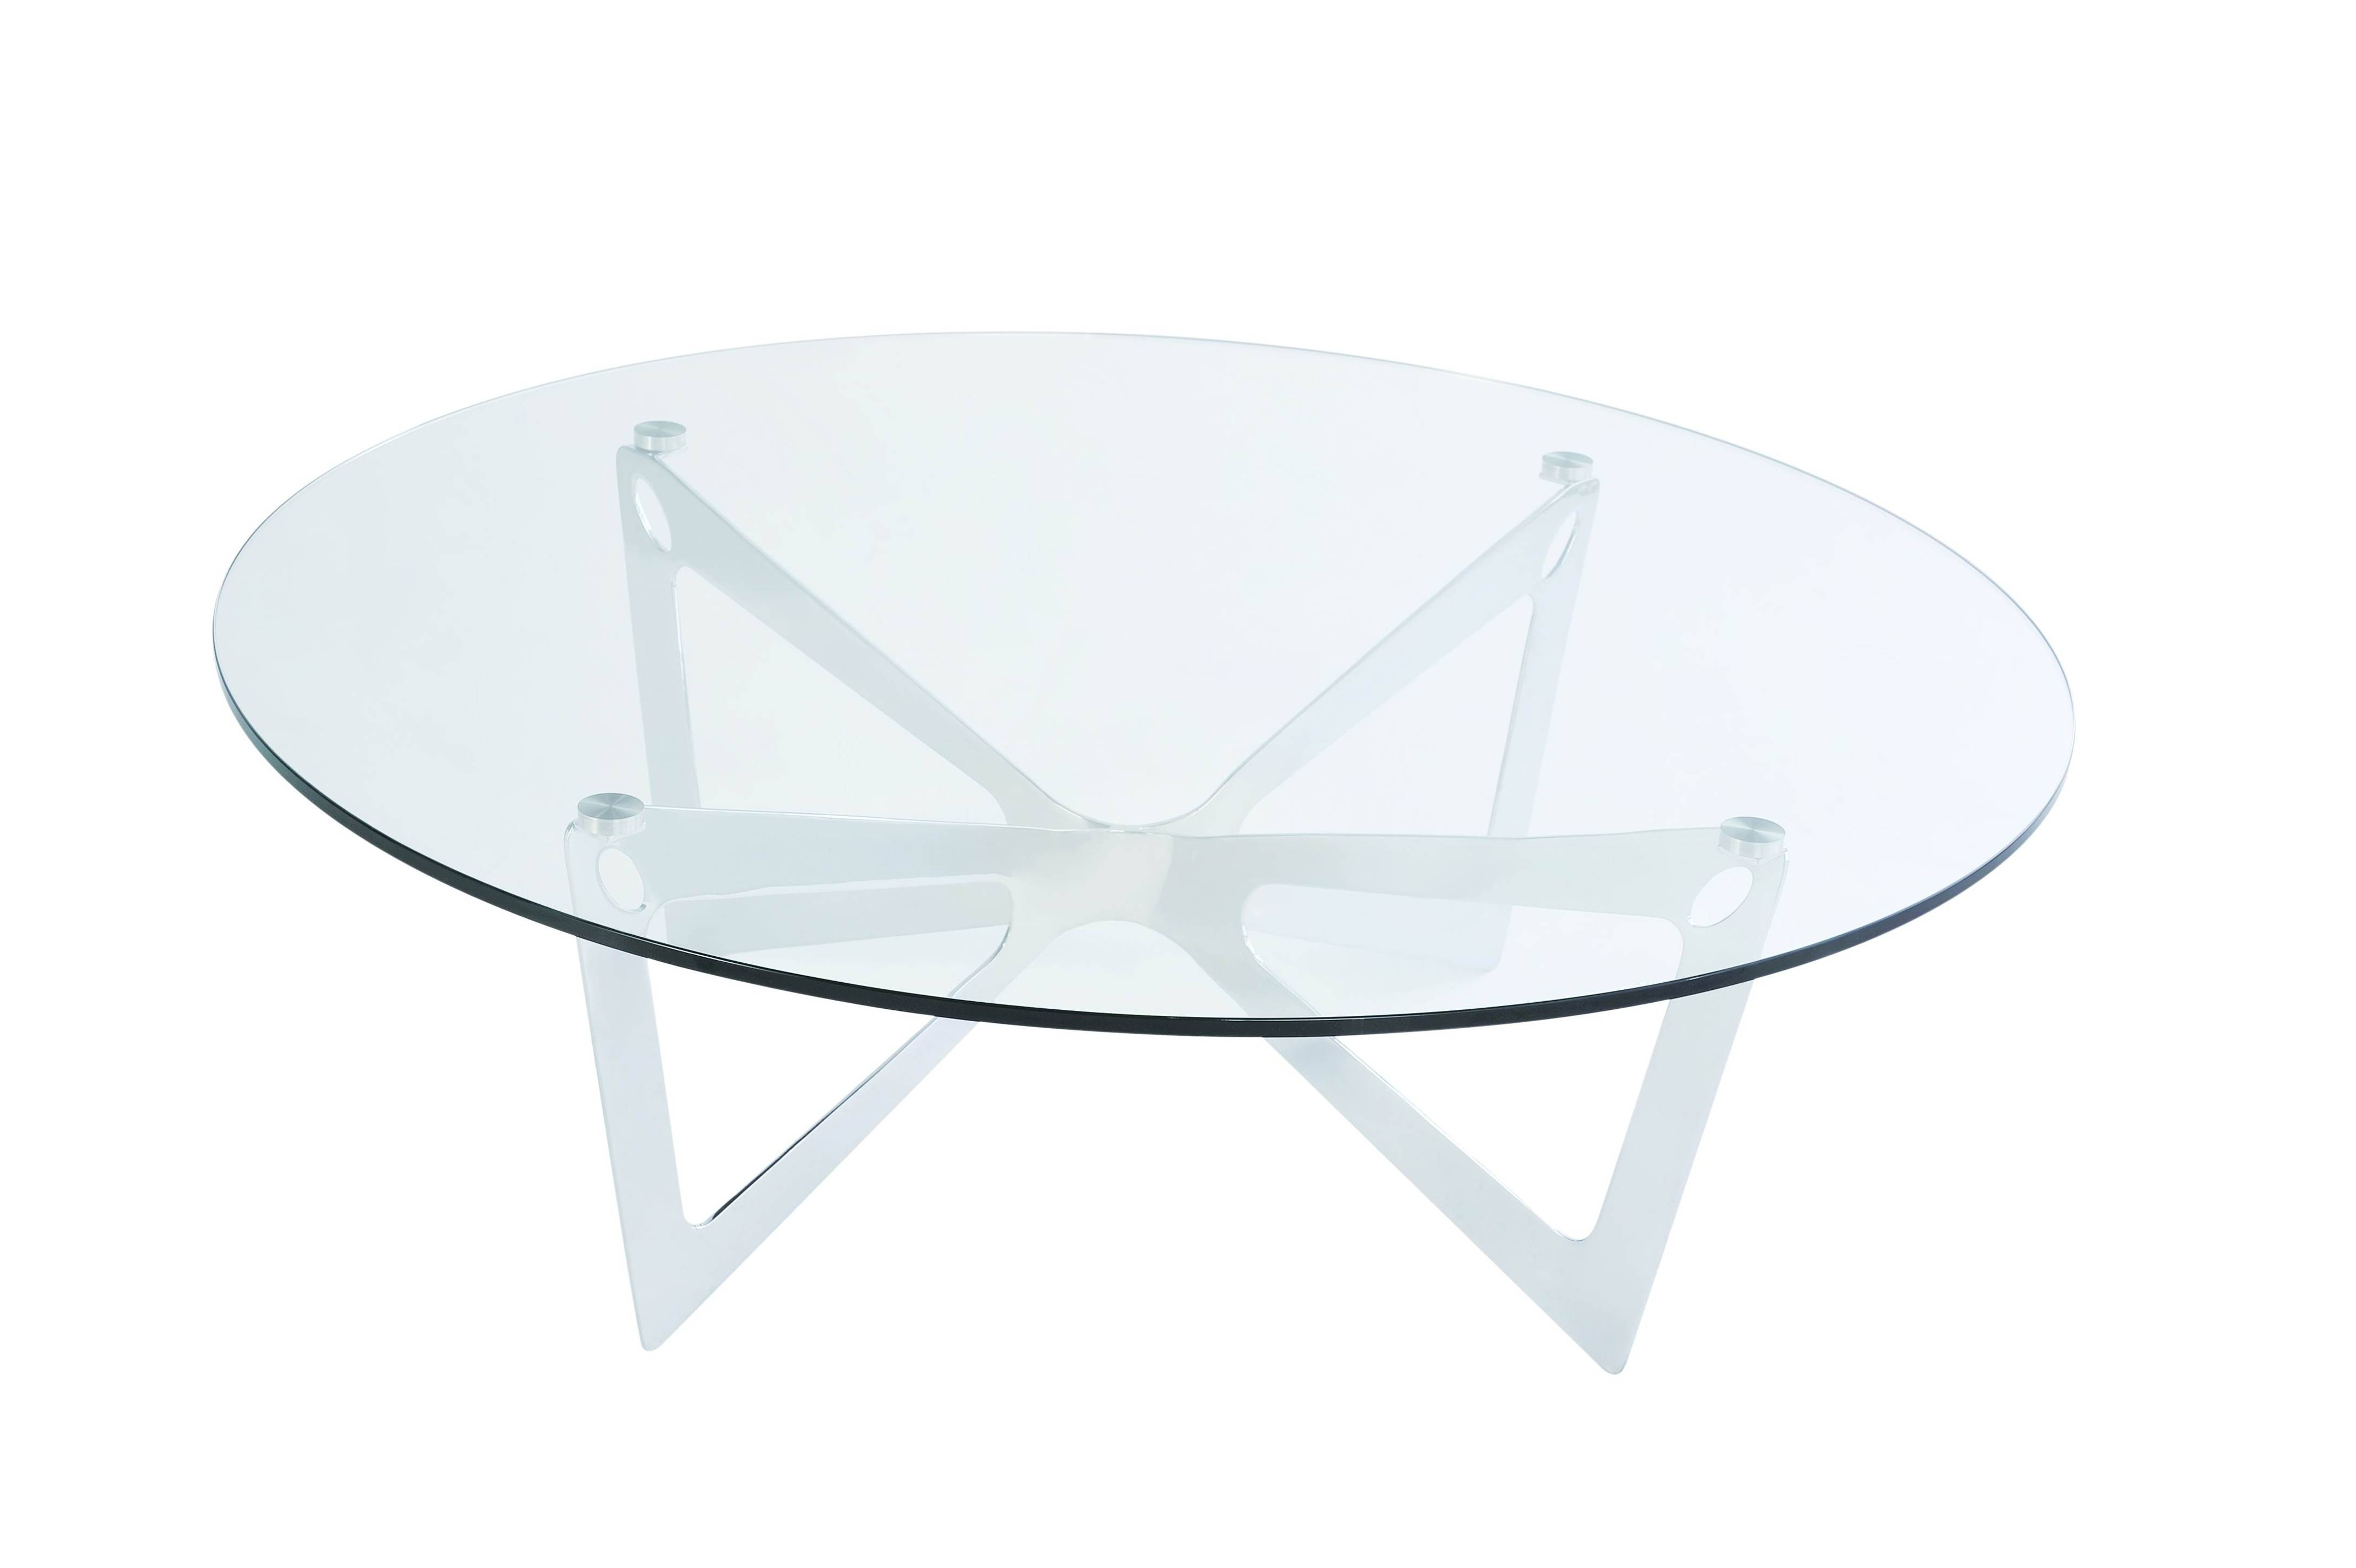 Table : Contemporary Oval Coffee Tables Glass Made Of Metal And within Steel And Glass Coffee Tables (Image 29 of 30)